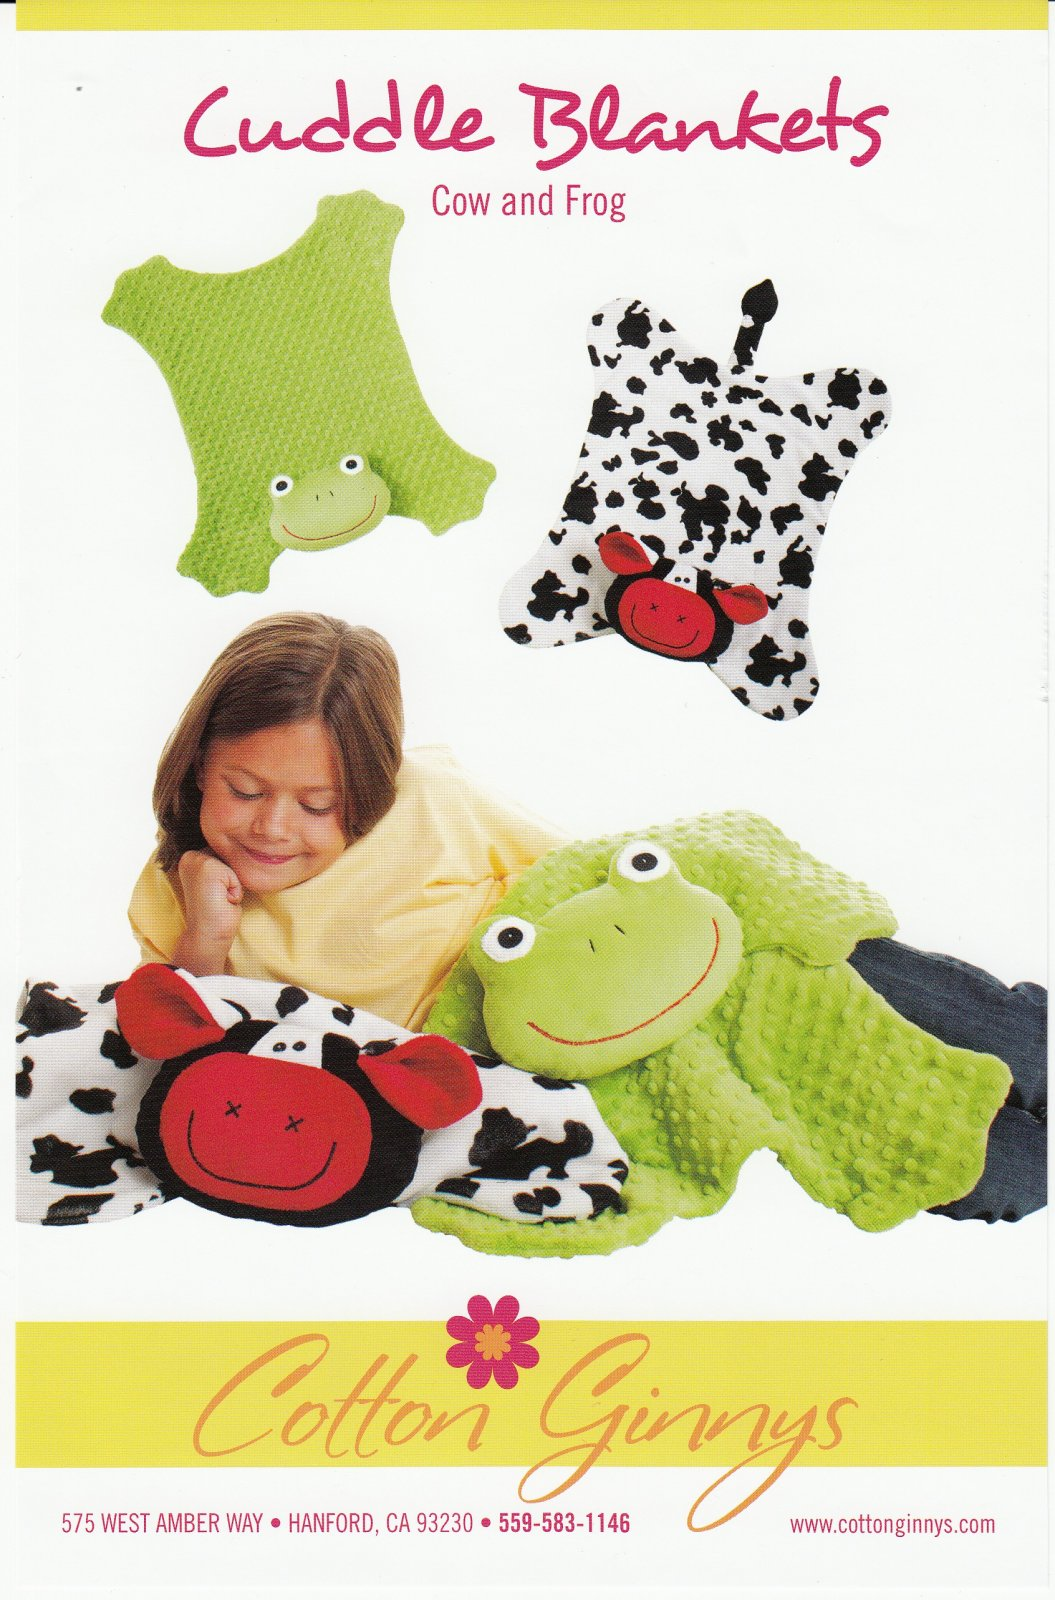 Cuddle Blankets - Cow & Frog